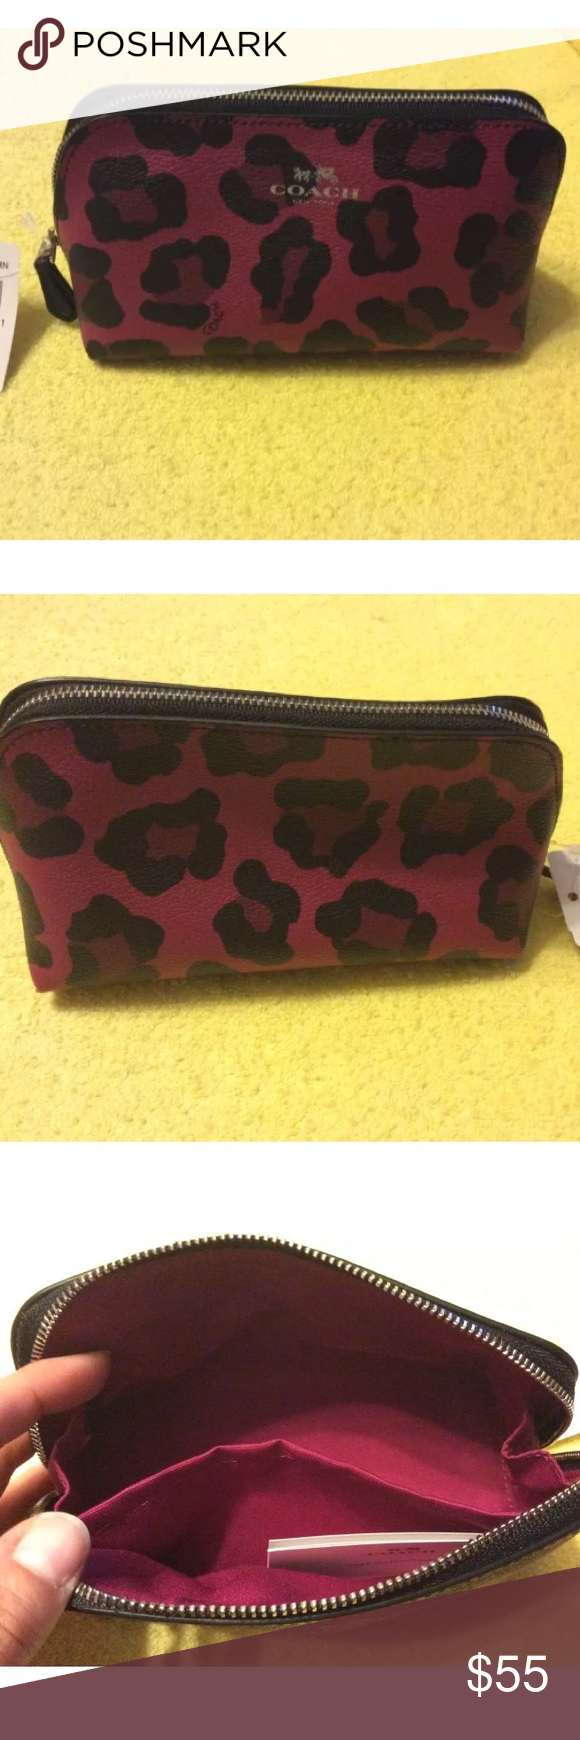 NWT Coach F53438 Ocelot Cosmetic Case 17 NWT Coach F53438 Ocelot Cosmetic Case 17, SV/RN, Silver/Cranberry **A new model item** Silver/black/cranberry multi colored Crossgrain leather Zip-top closure, fabric lining Inside multifunction pocket Measures about 6 1/2 (L) x 3 1/2 (H) x 3 1/4 (W) MSRP: $75.00 + tax Coach Bags Cosmetic Bags & Cases